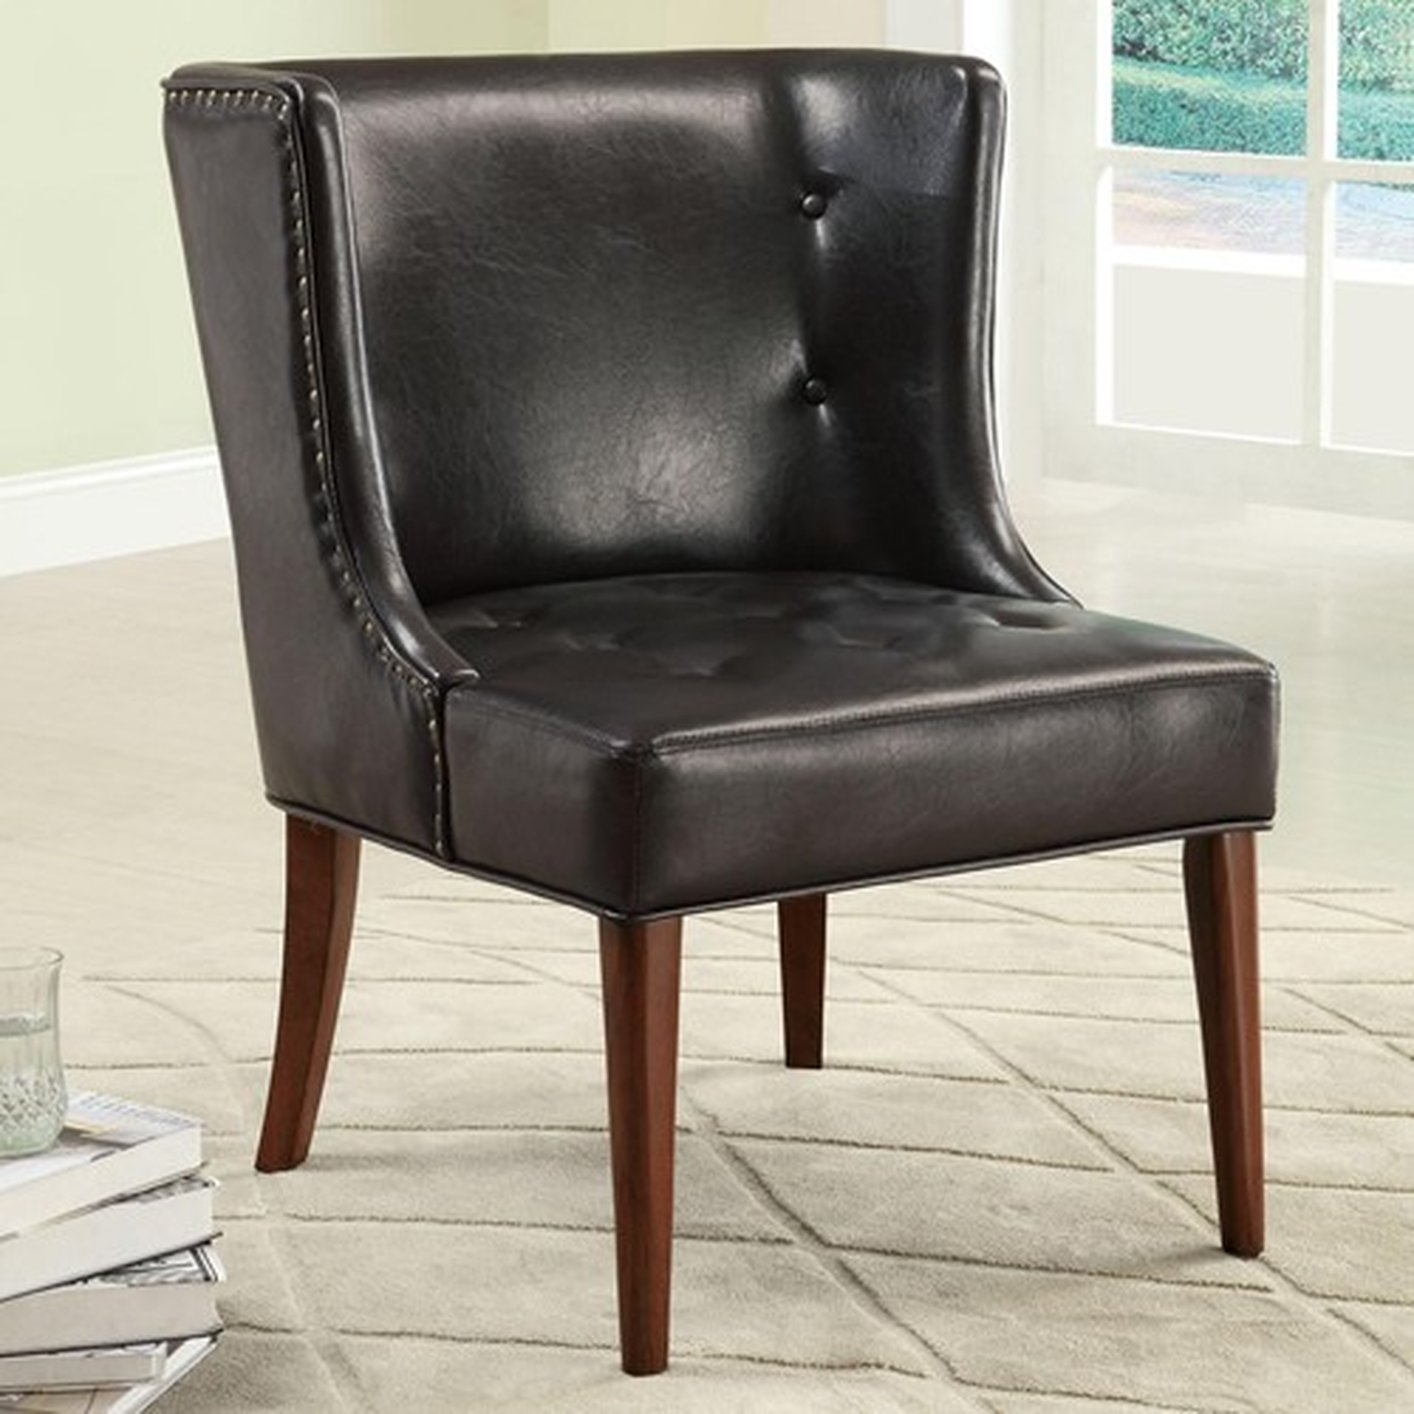 Coaster Black Leather Accent Chair Steal A Sofa Furniture